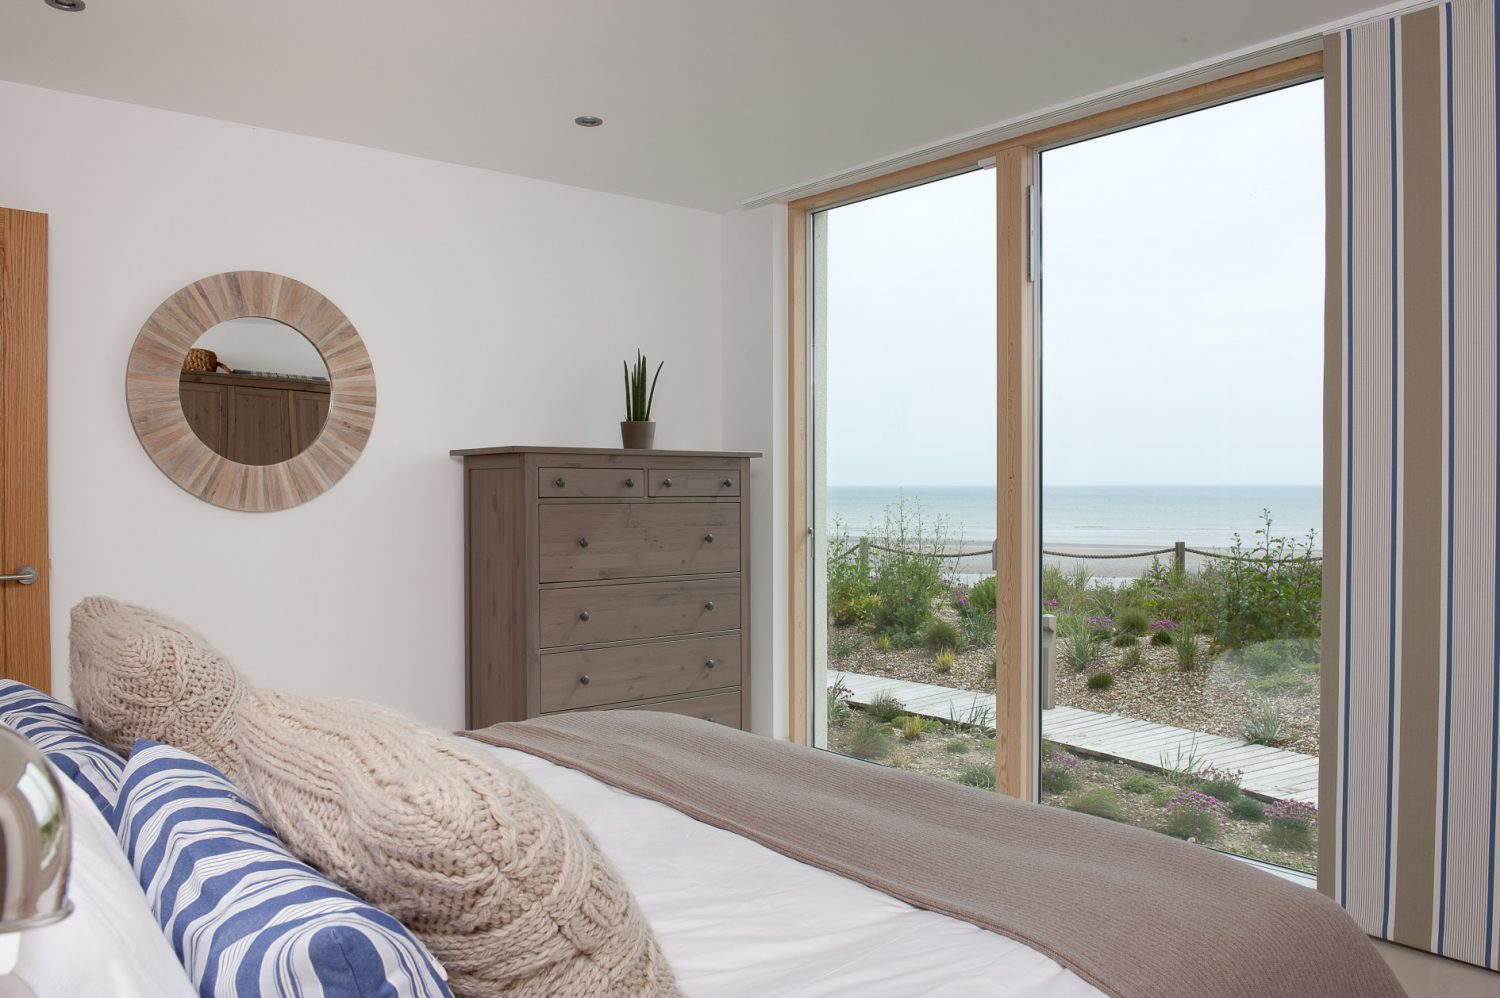 In the other wing another guest bedroom, facing the sea, is decorated in softer shades of taupe, ecru and slate blue